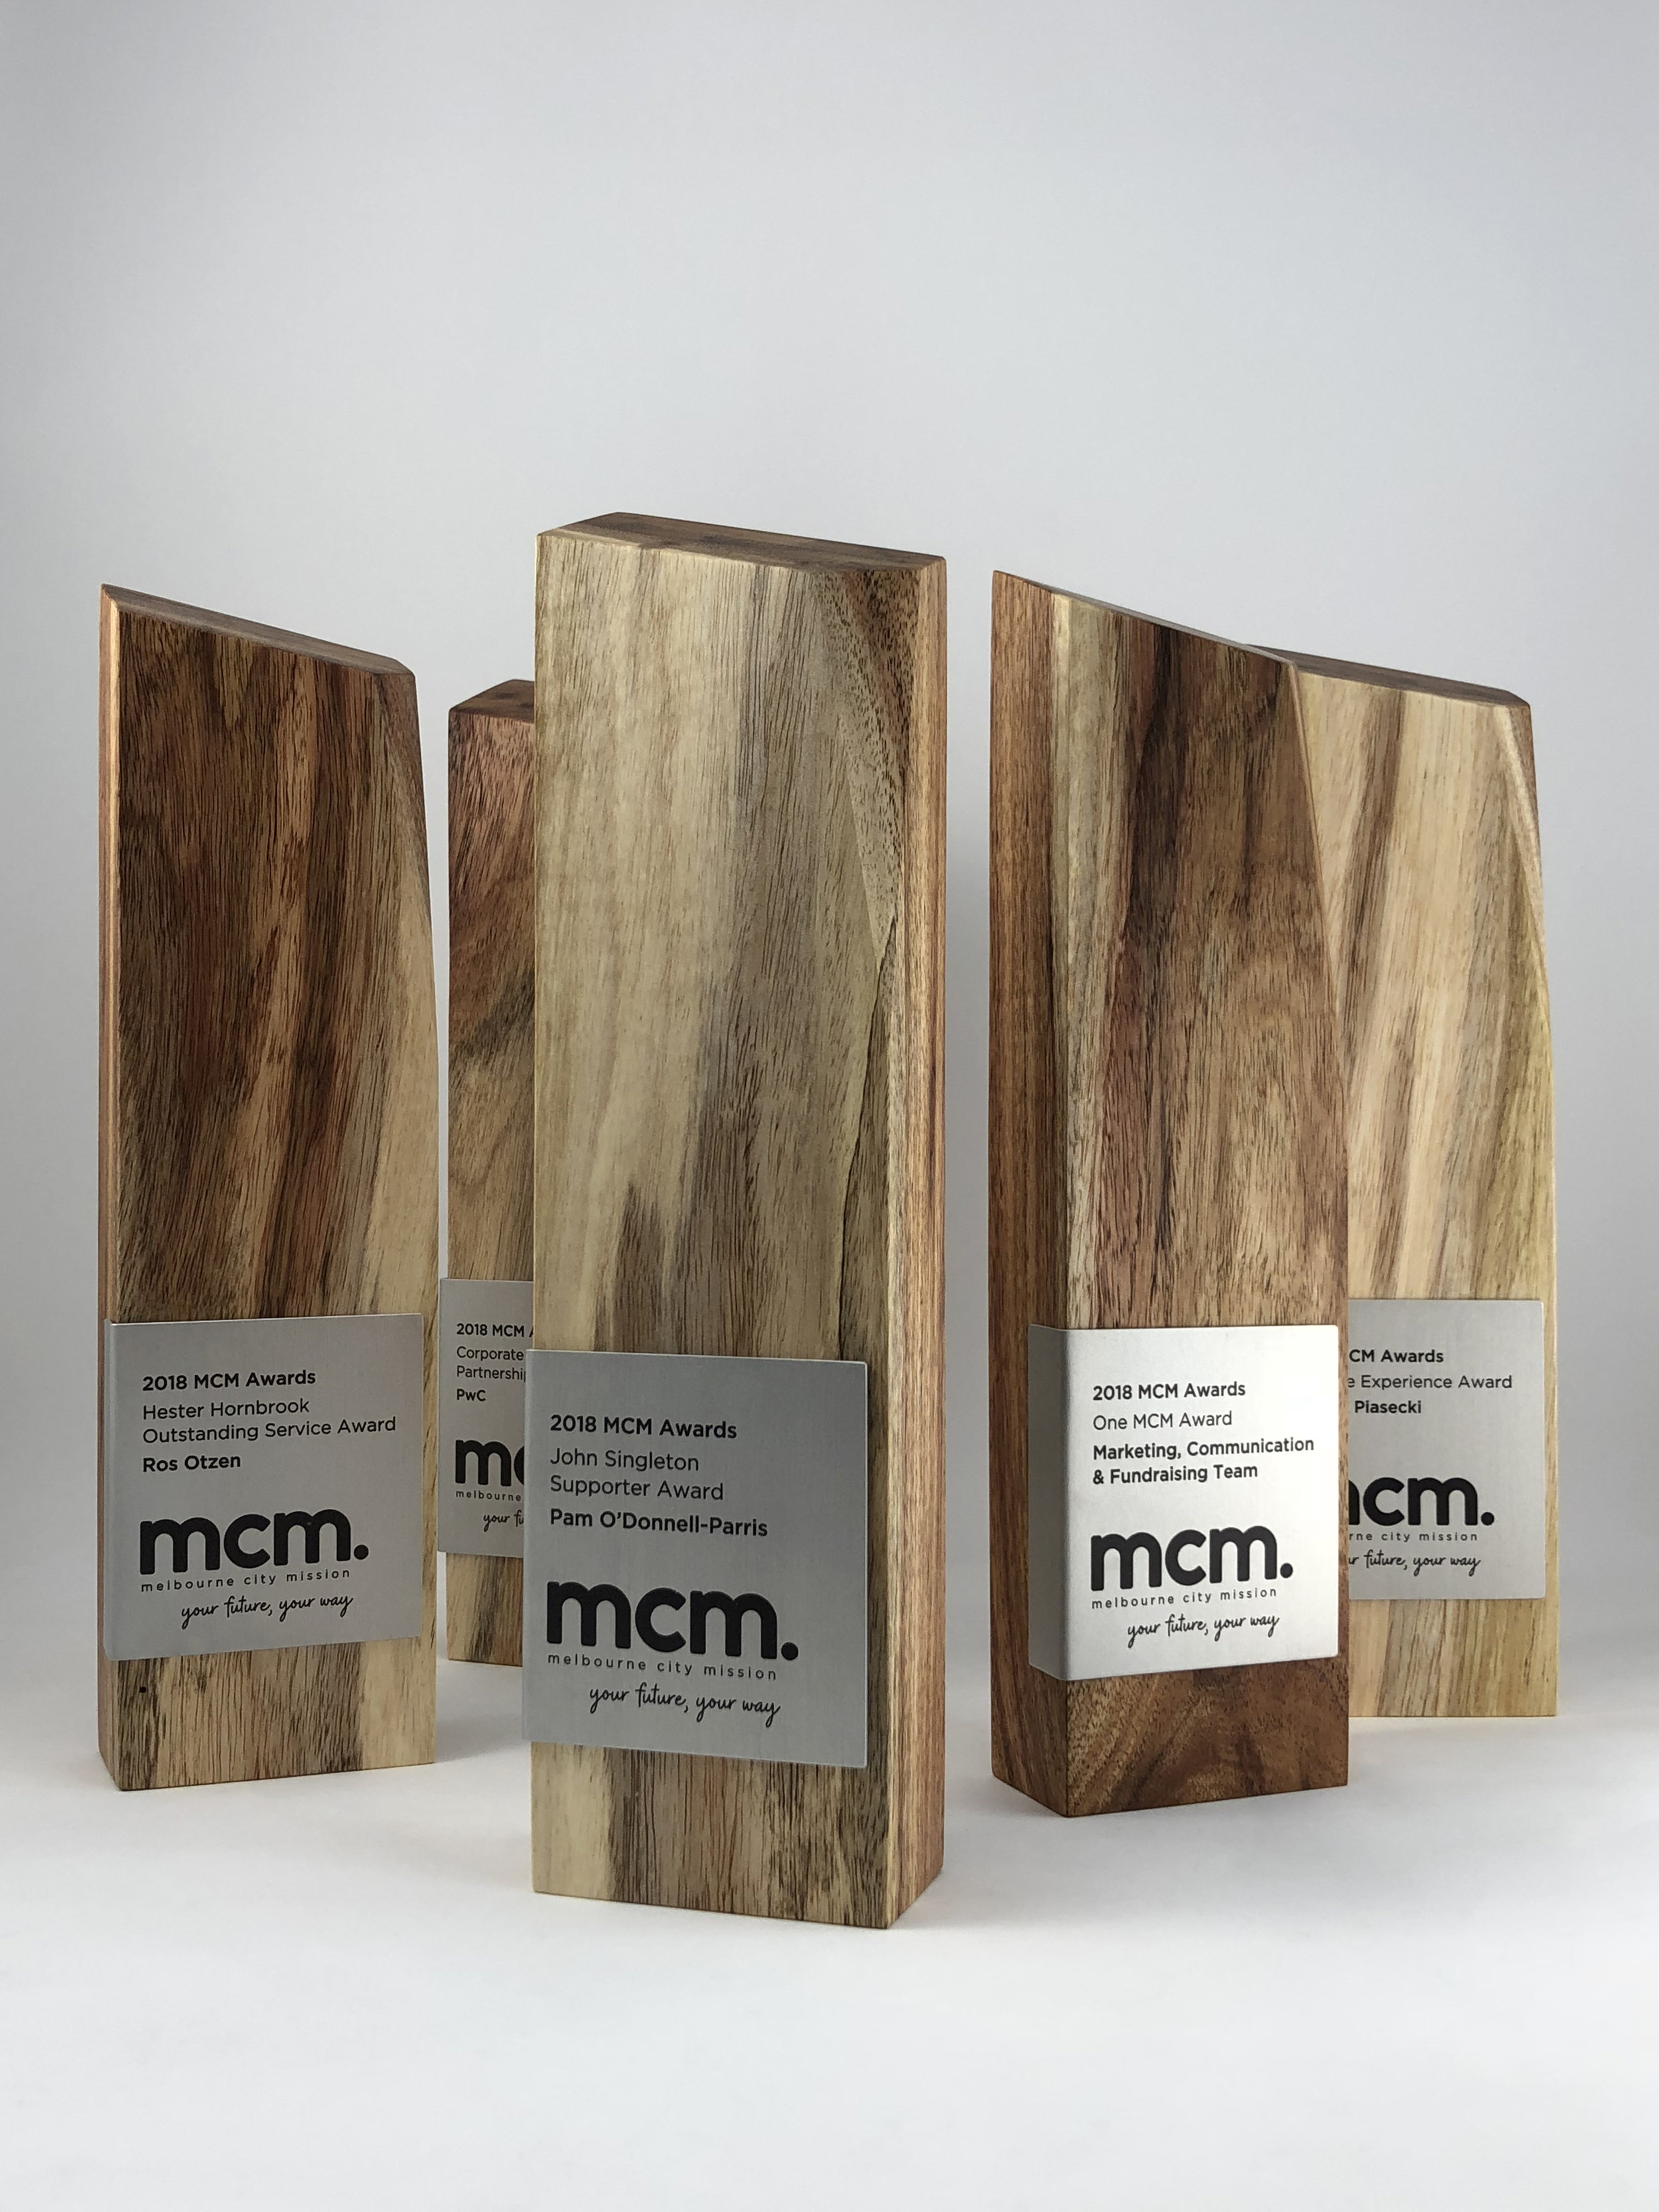 mcm-awards-reclaimed-eco-timber-chamfer-metal-trophy-02.jpg